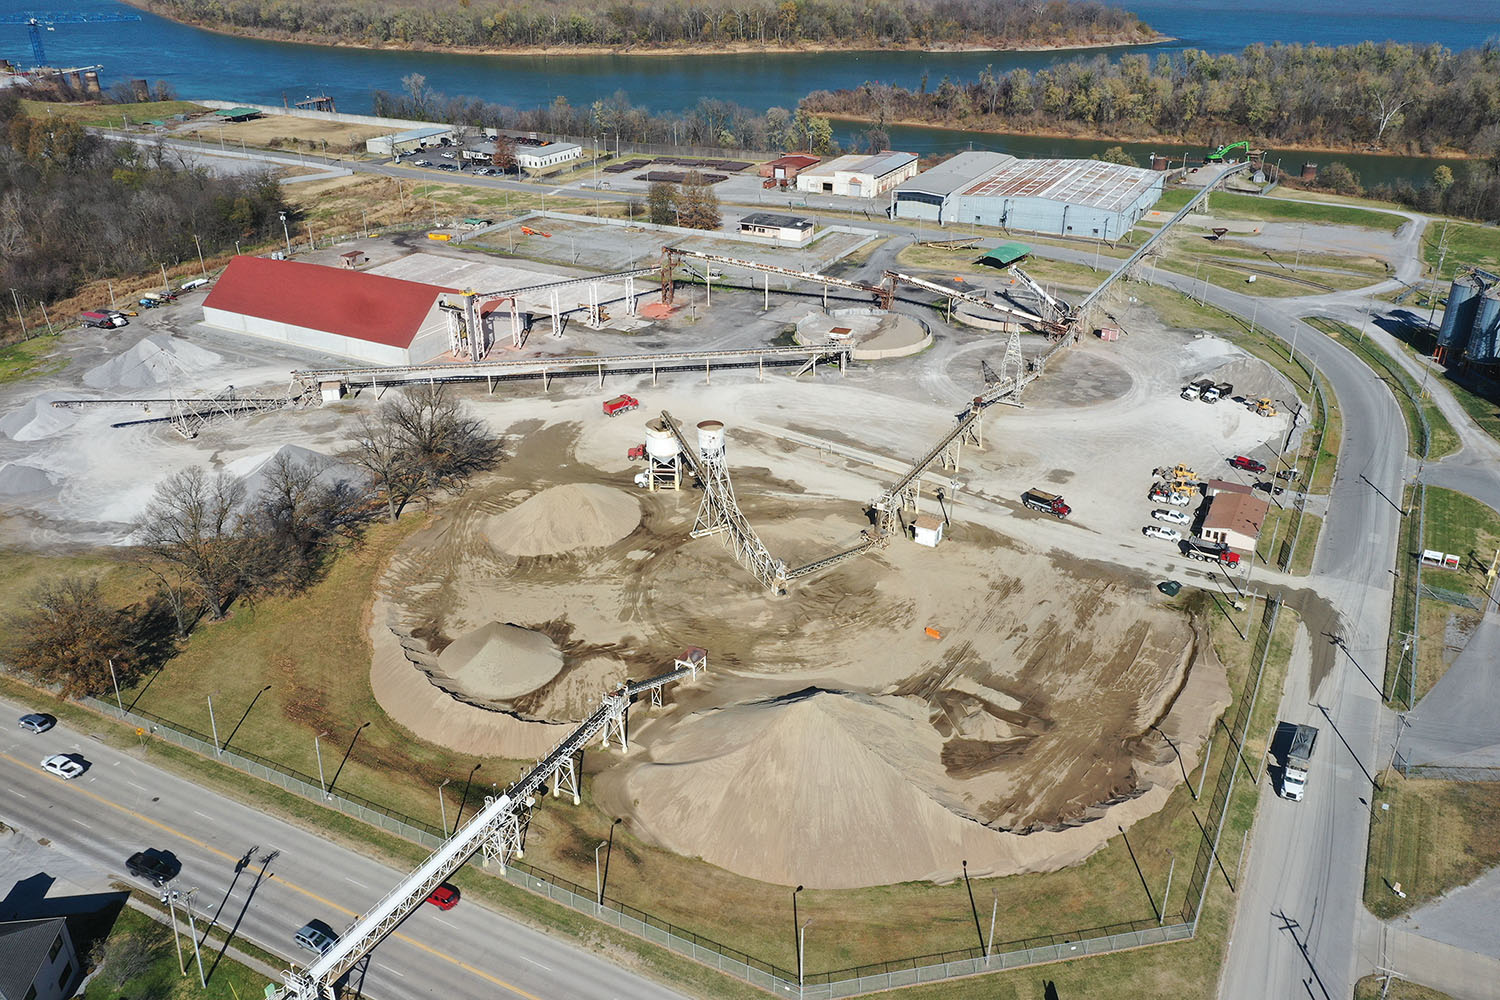 The Paducah-McCracken County Riverport hopes to expand the capacity of its 20-acre bulk commodity storage yard and transfer facility with landside yard and equipment upgrades and expansions. (Photo courtesy of the Paducah-McCracken County Riverport)